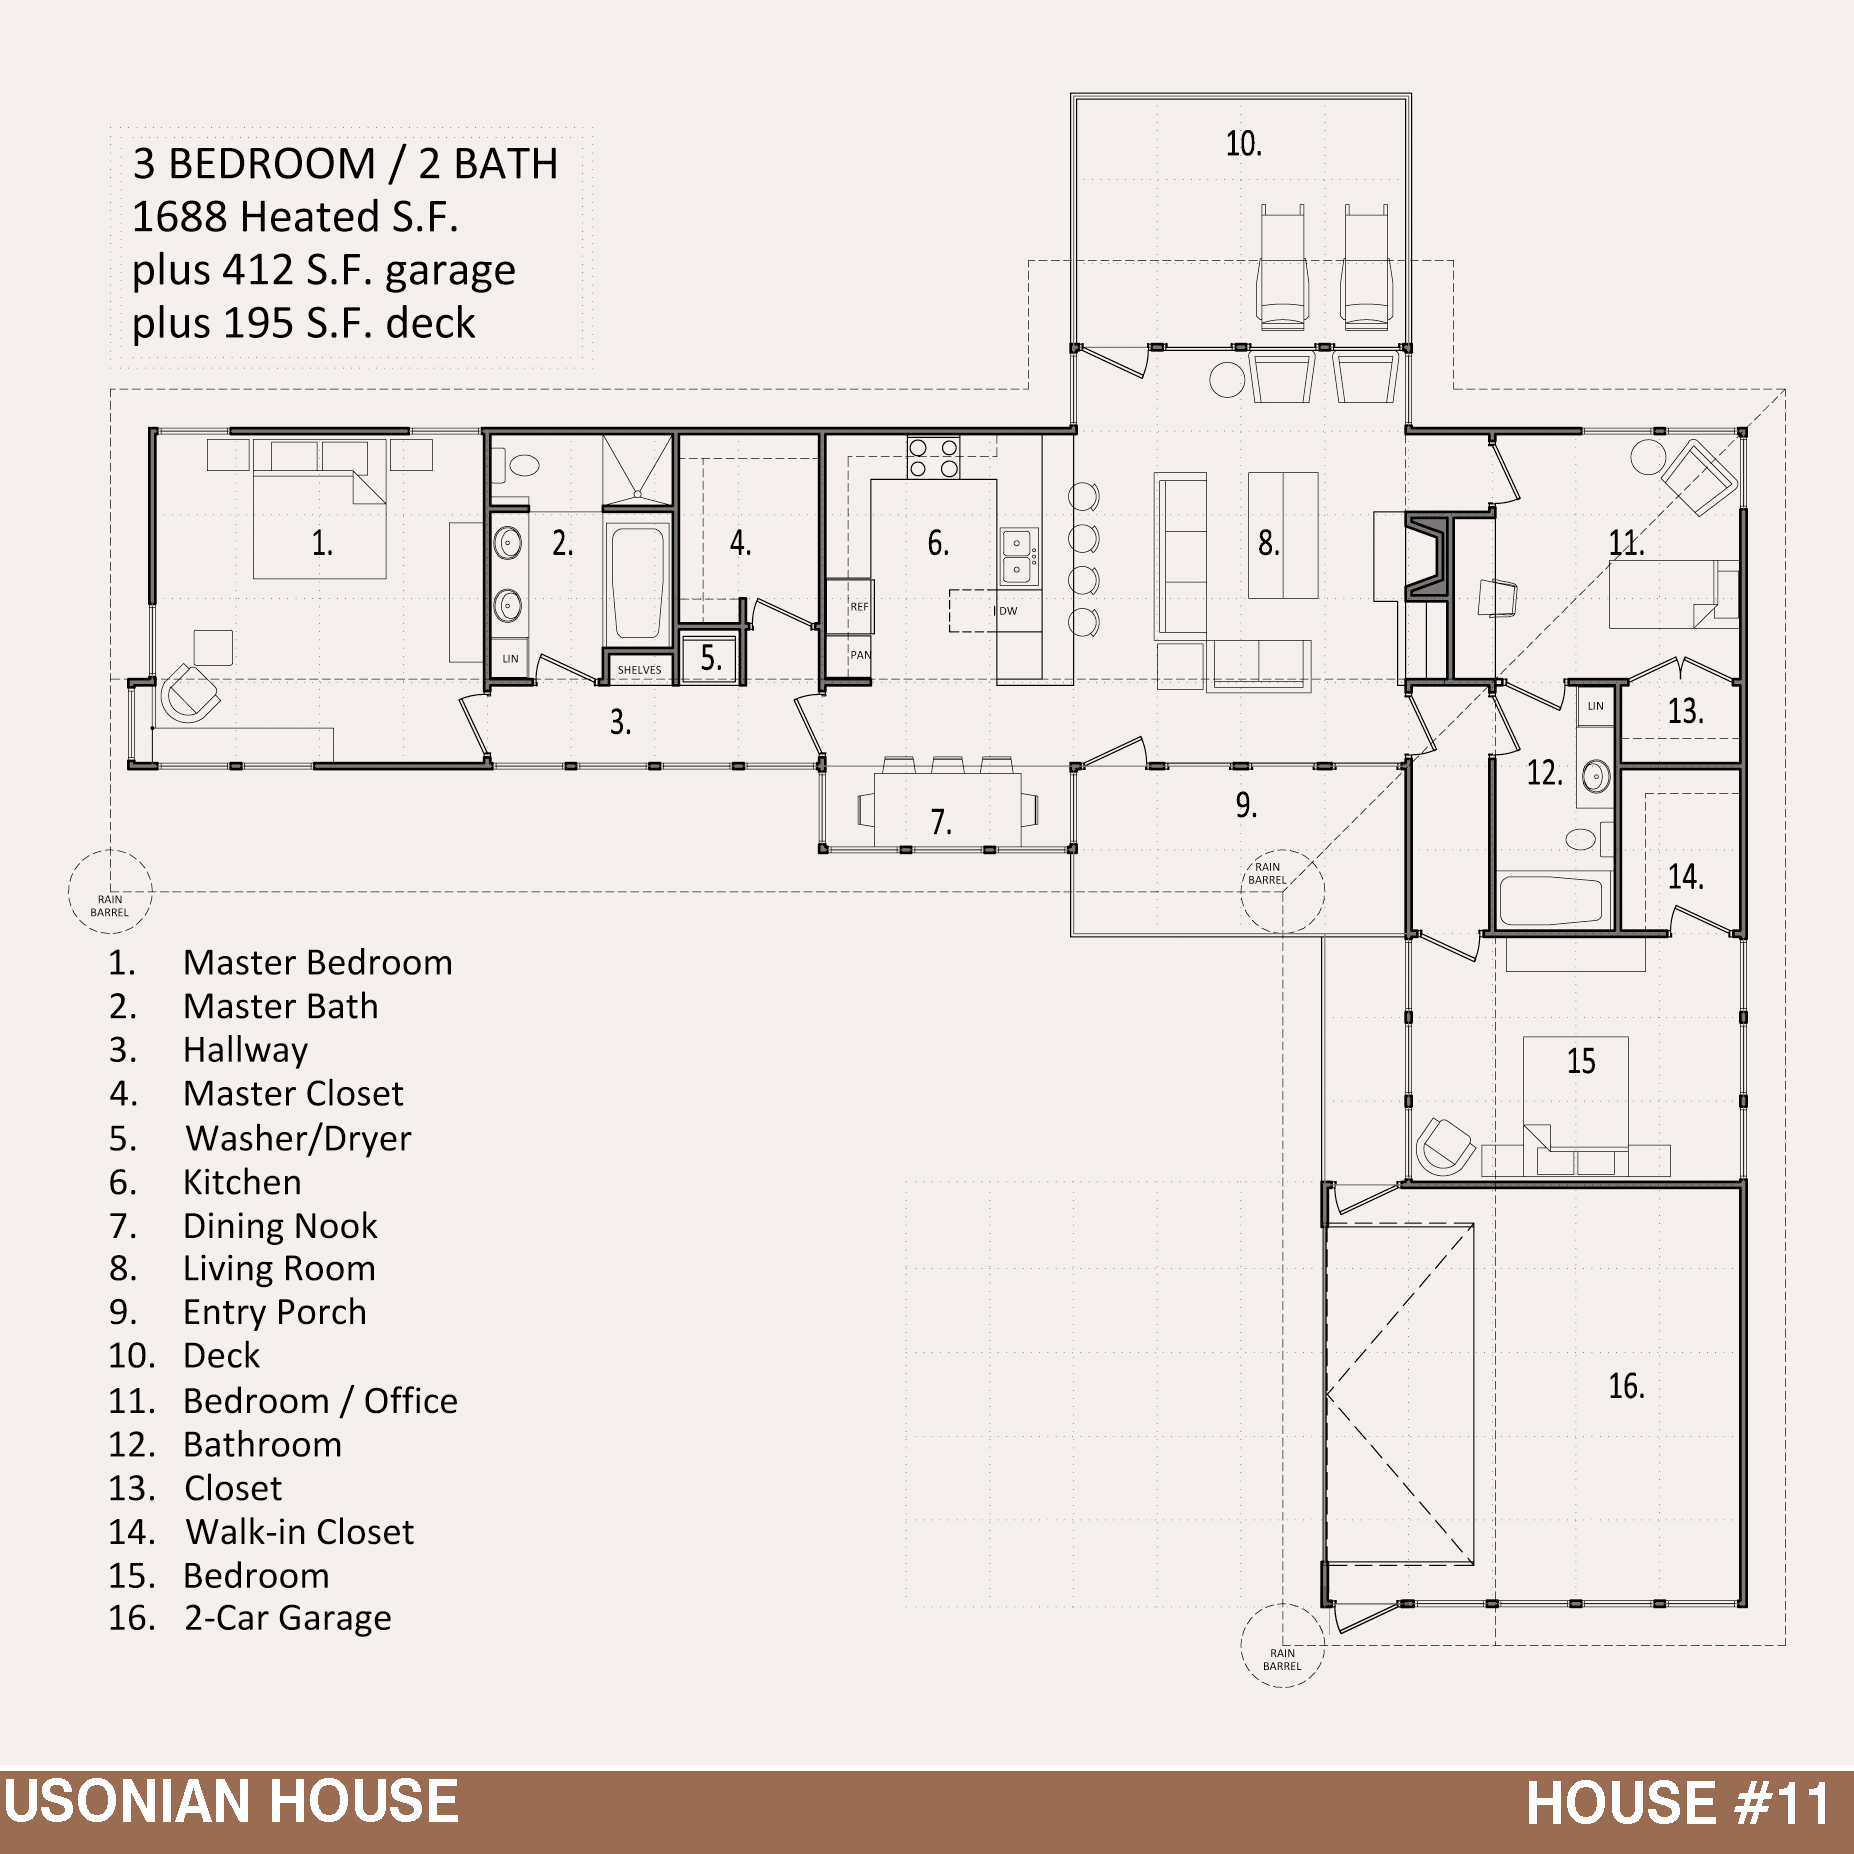 House 11 – The Usonian House | Jody Brown Architecture, pllc.